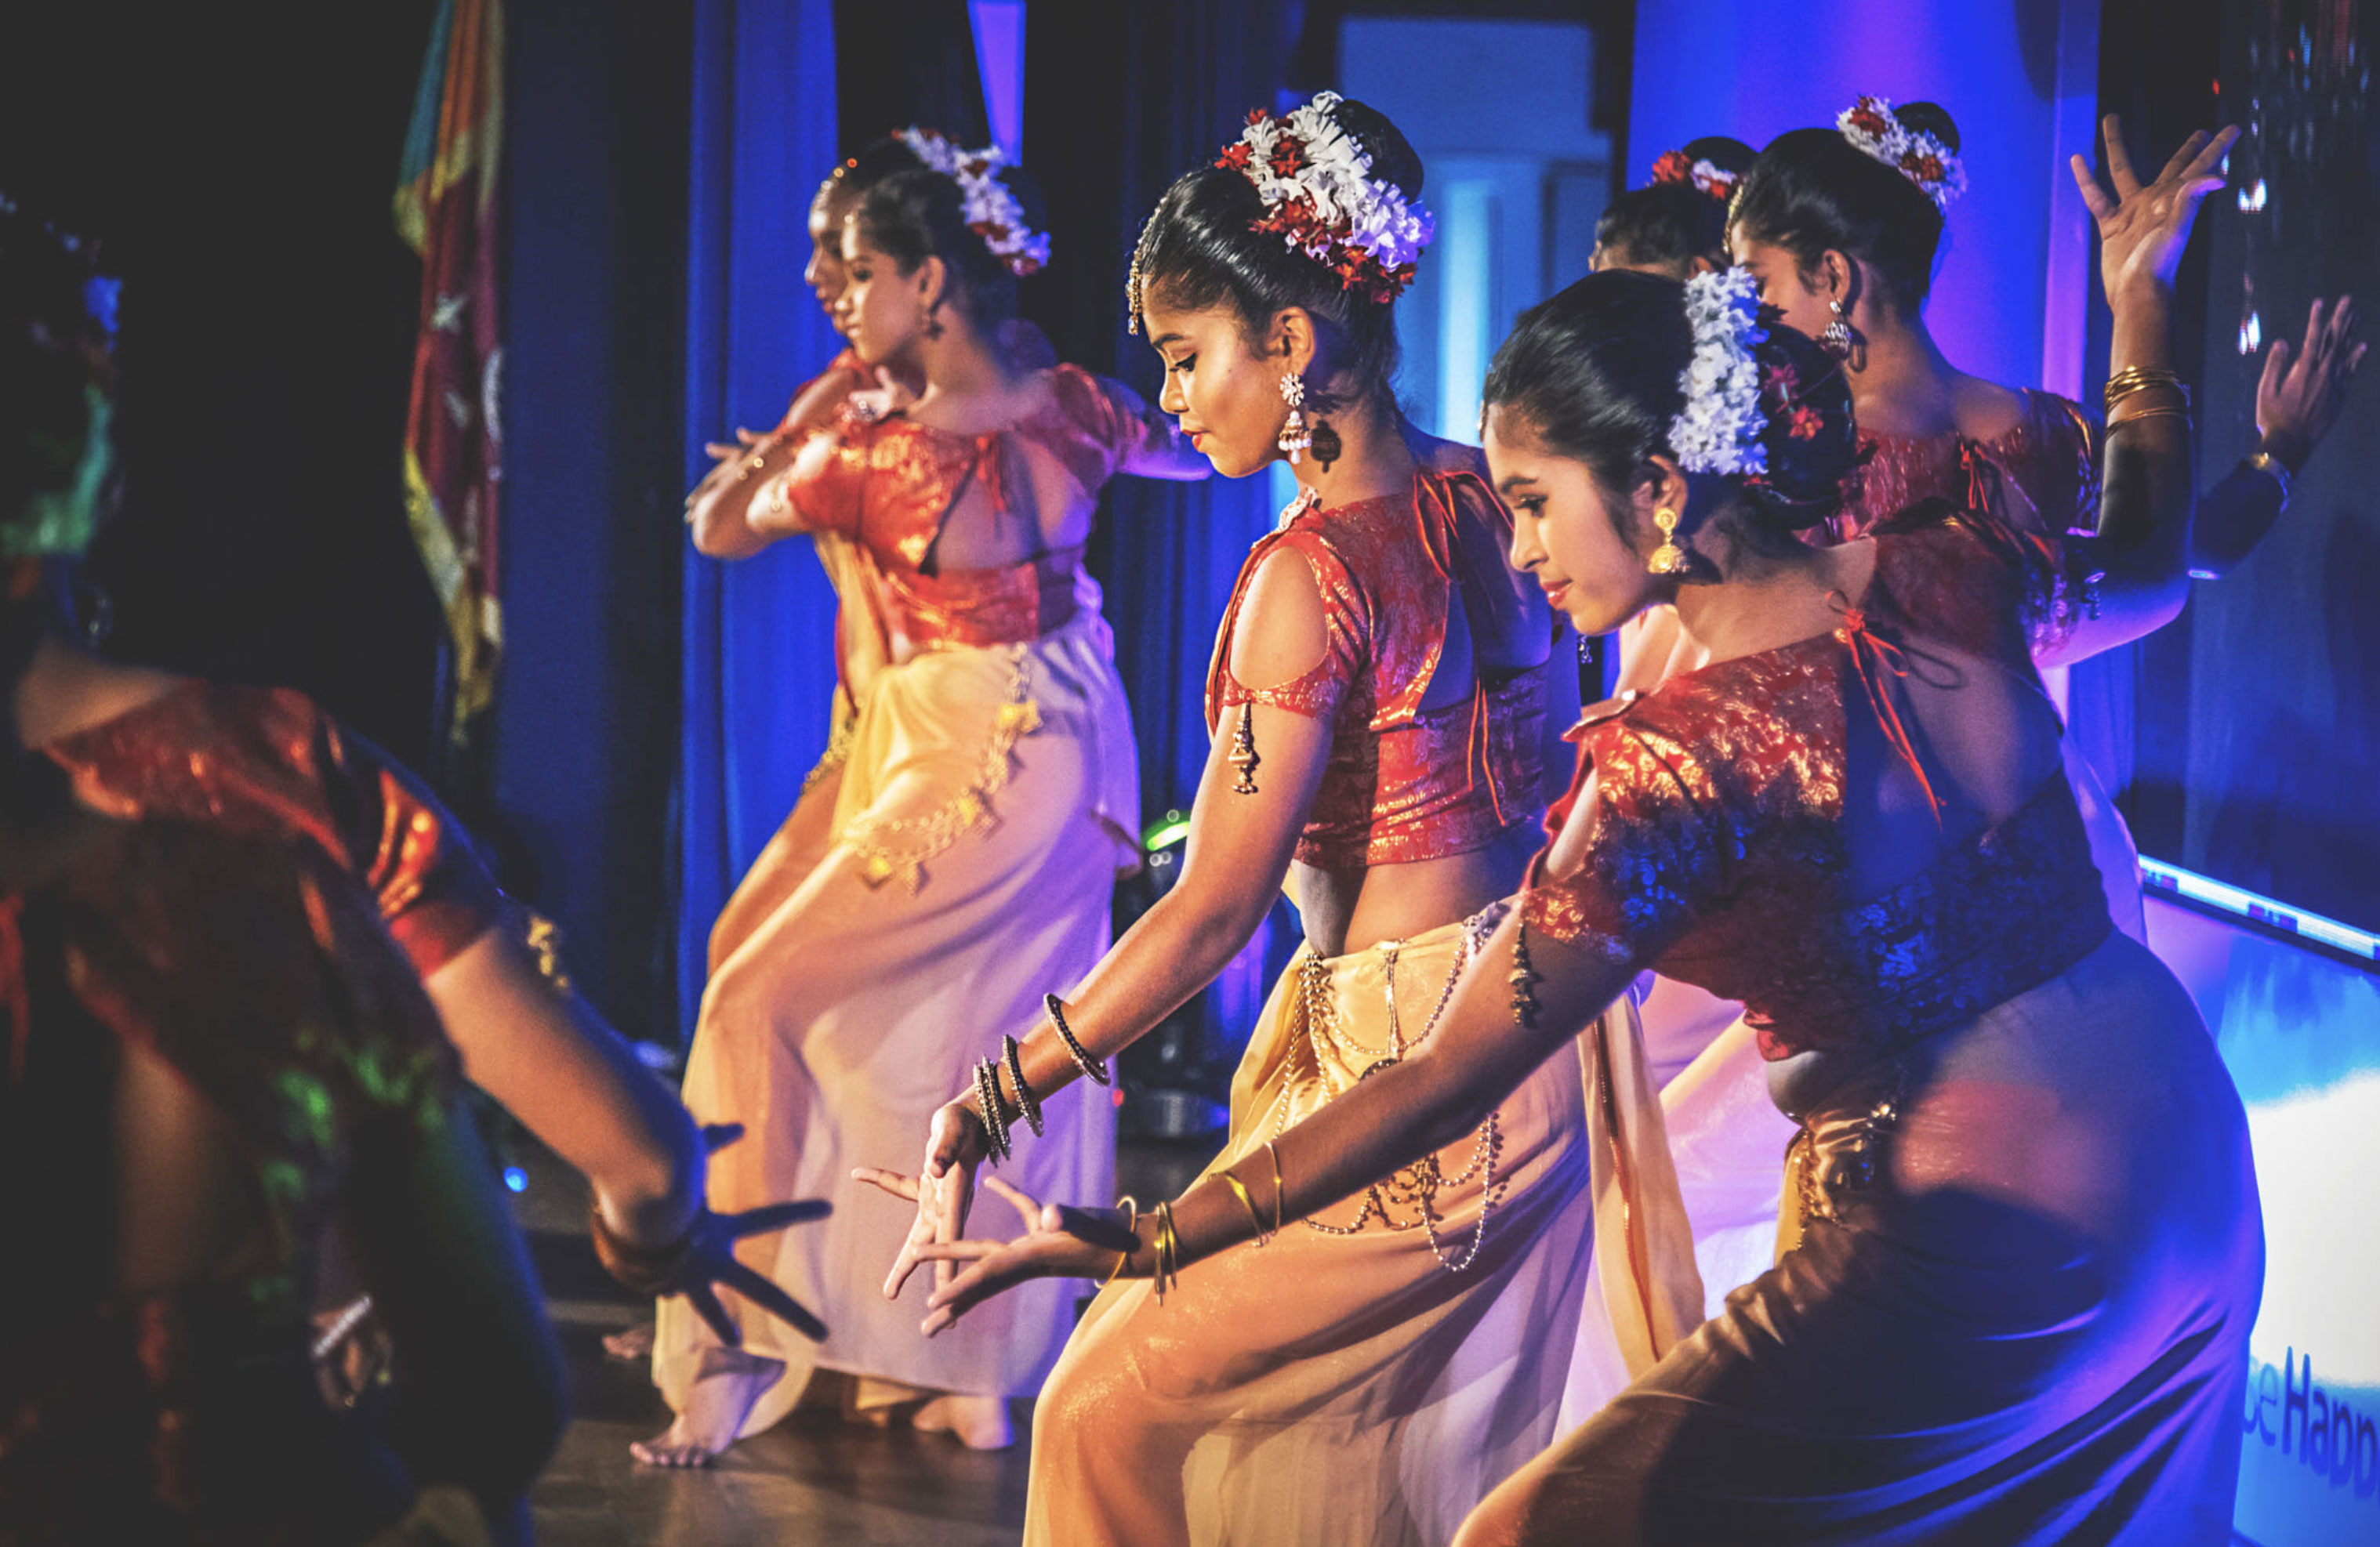 High School dancers, Kandy, Sri Lanka.